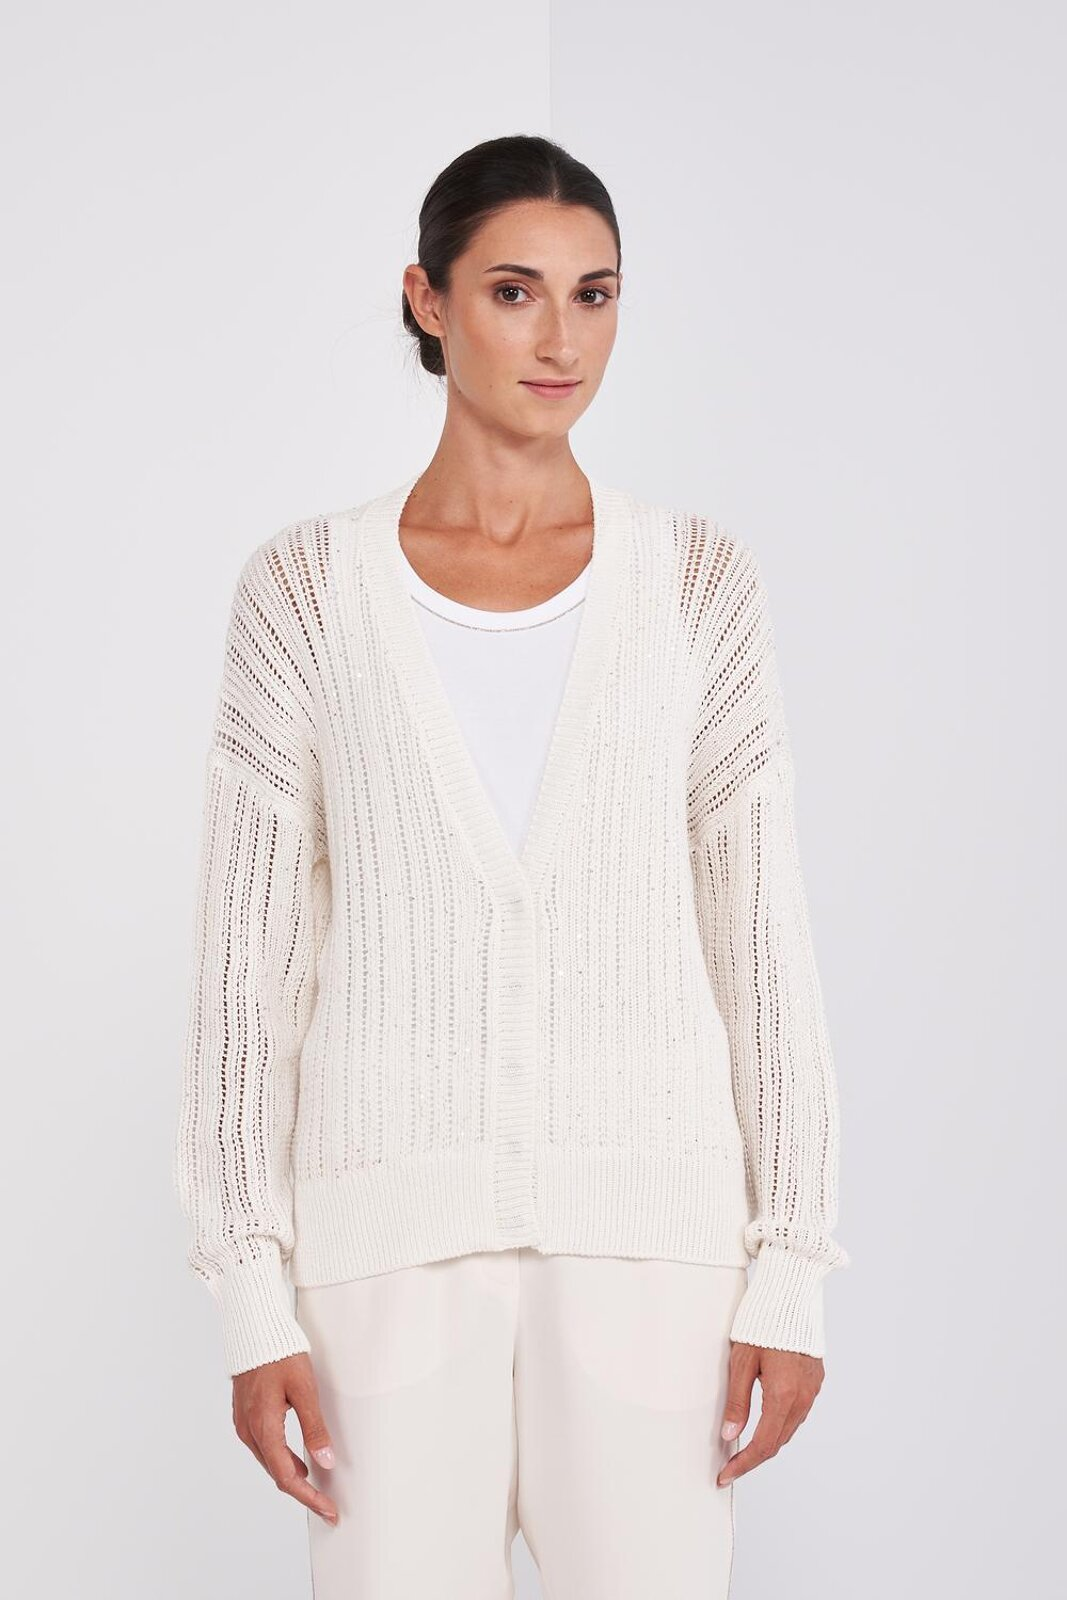 100% Soft Cotton Long Sleeve Tricot Cardigan Sweater. Processing With Micro Sequins Inserted In The Weft, V-neck, Central Button Closure. Regular fit. - Peserico